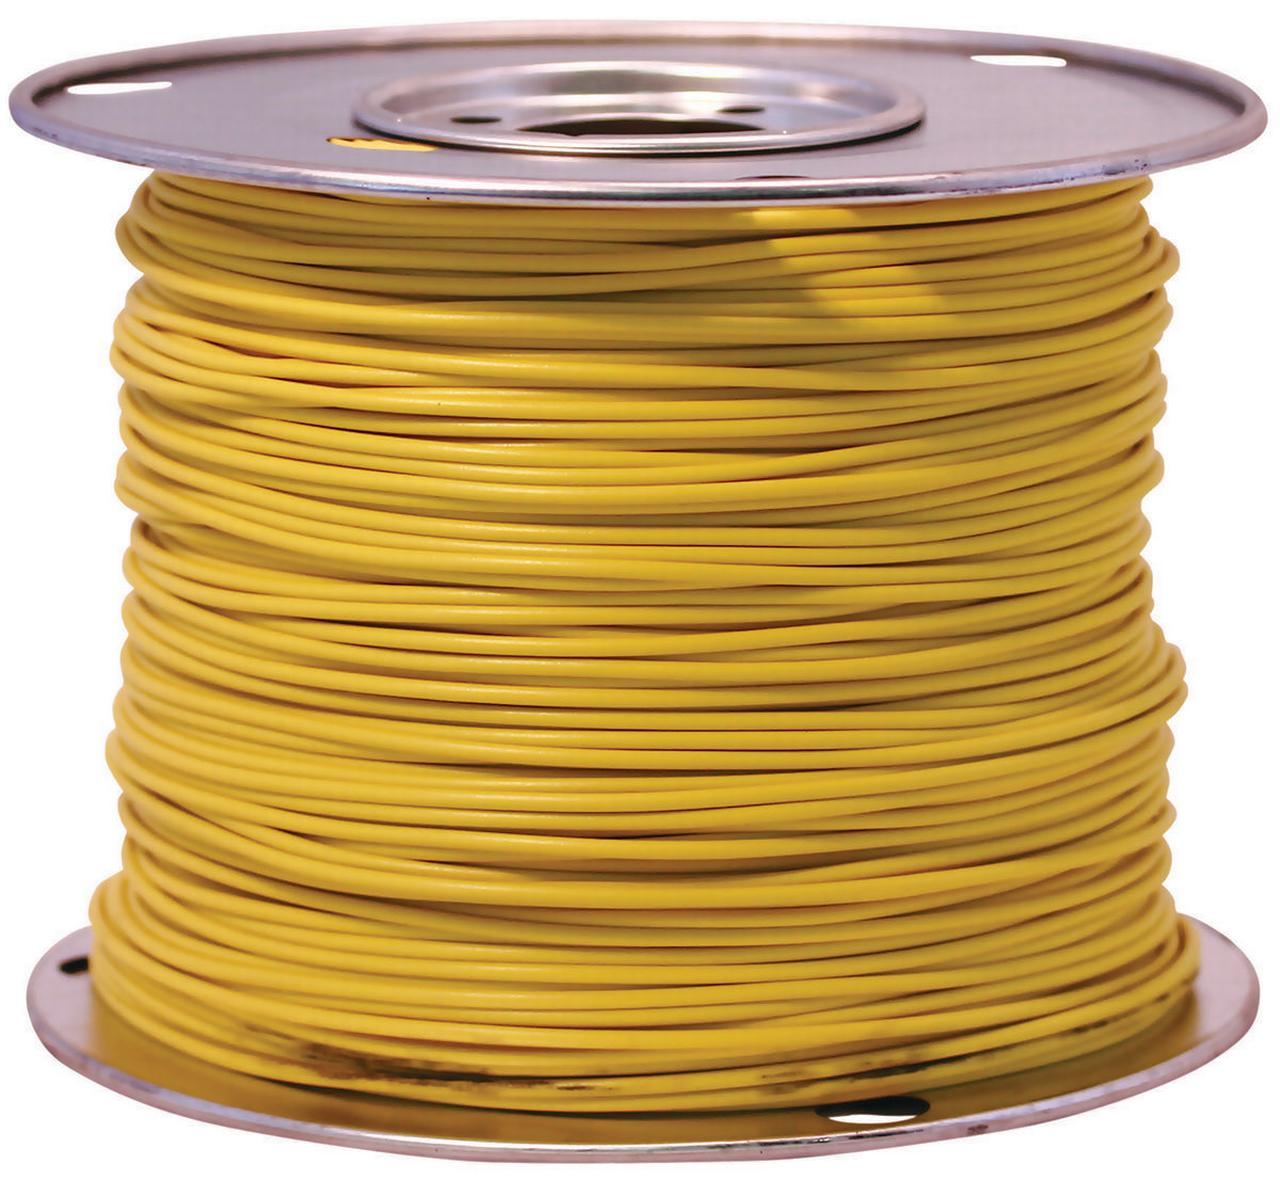 Coleman 55671723 Automotive Primary Wire, 12 AWG, 100 ft, PVC by Coleman